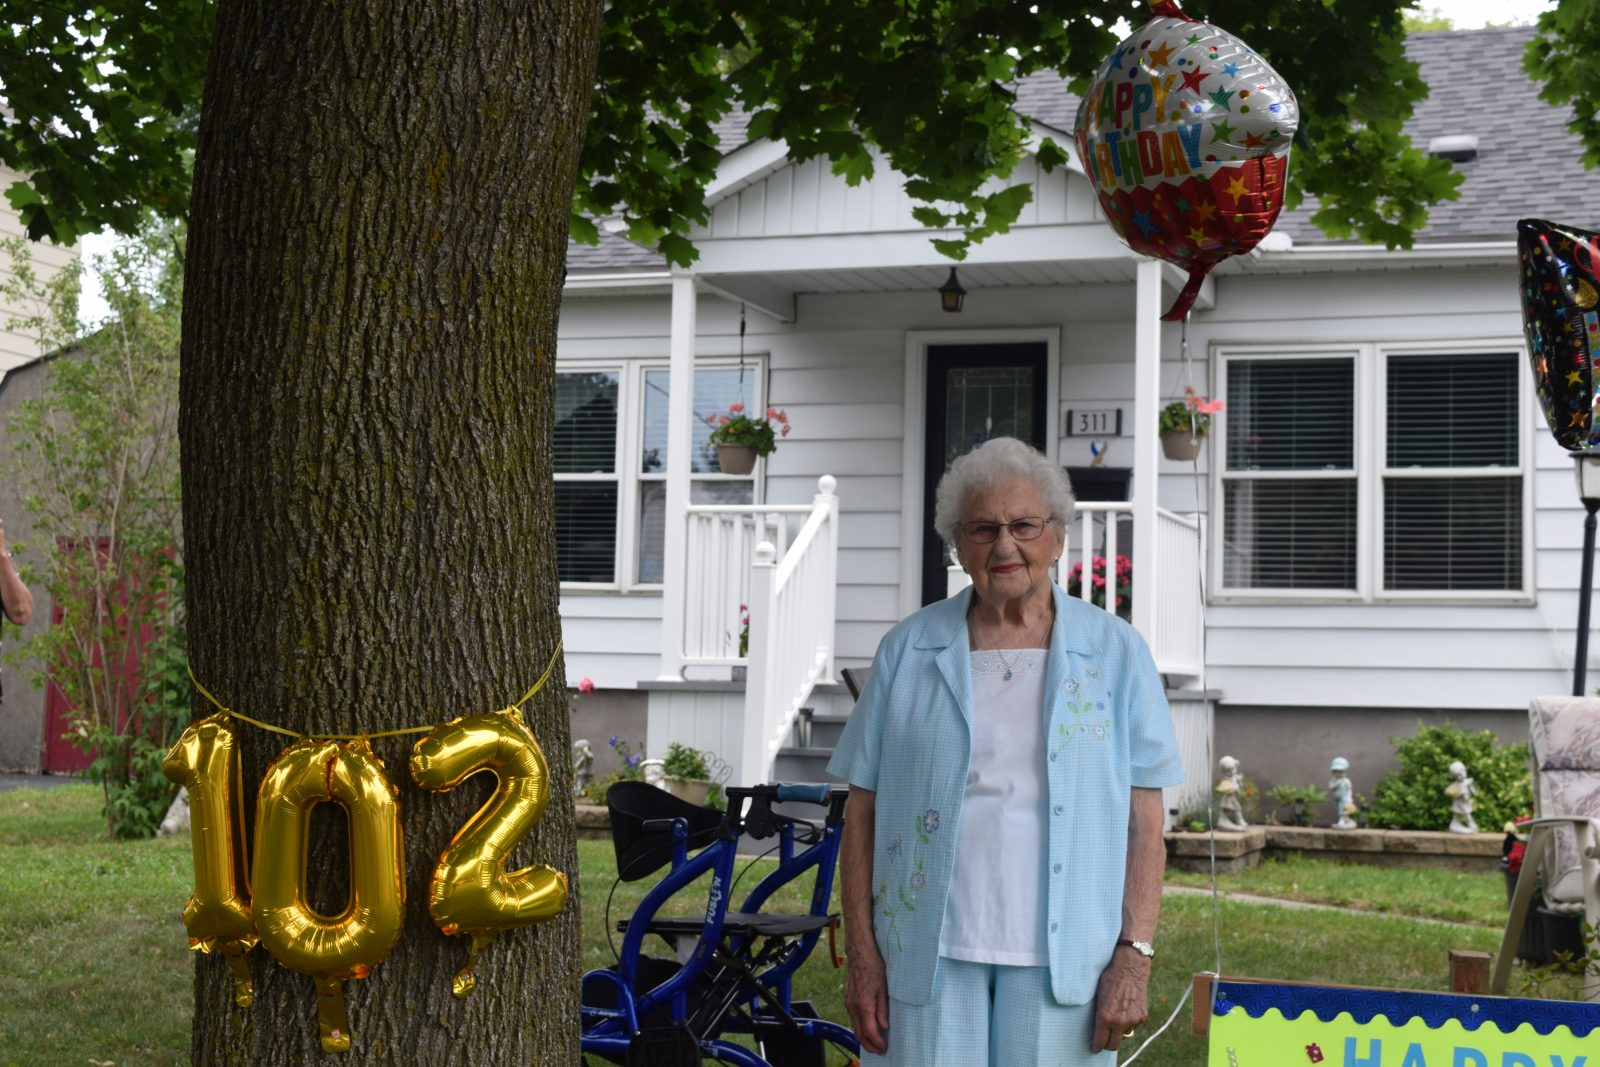 102 and still going strong